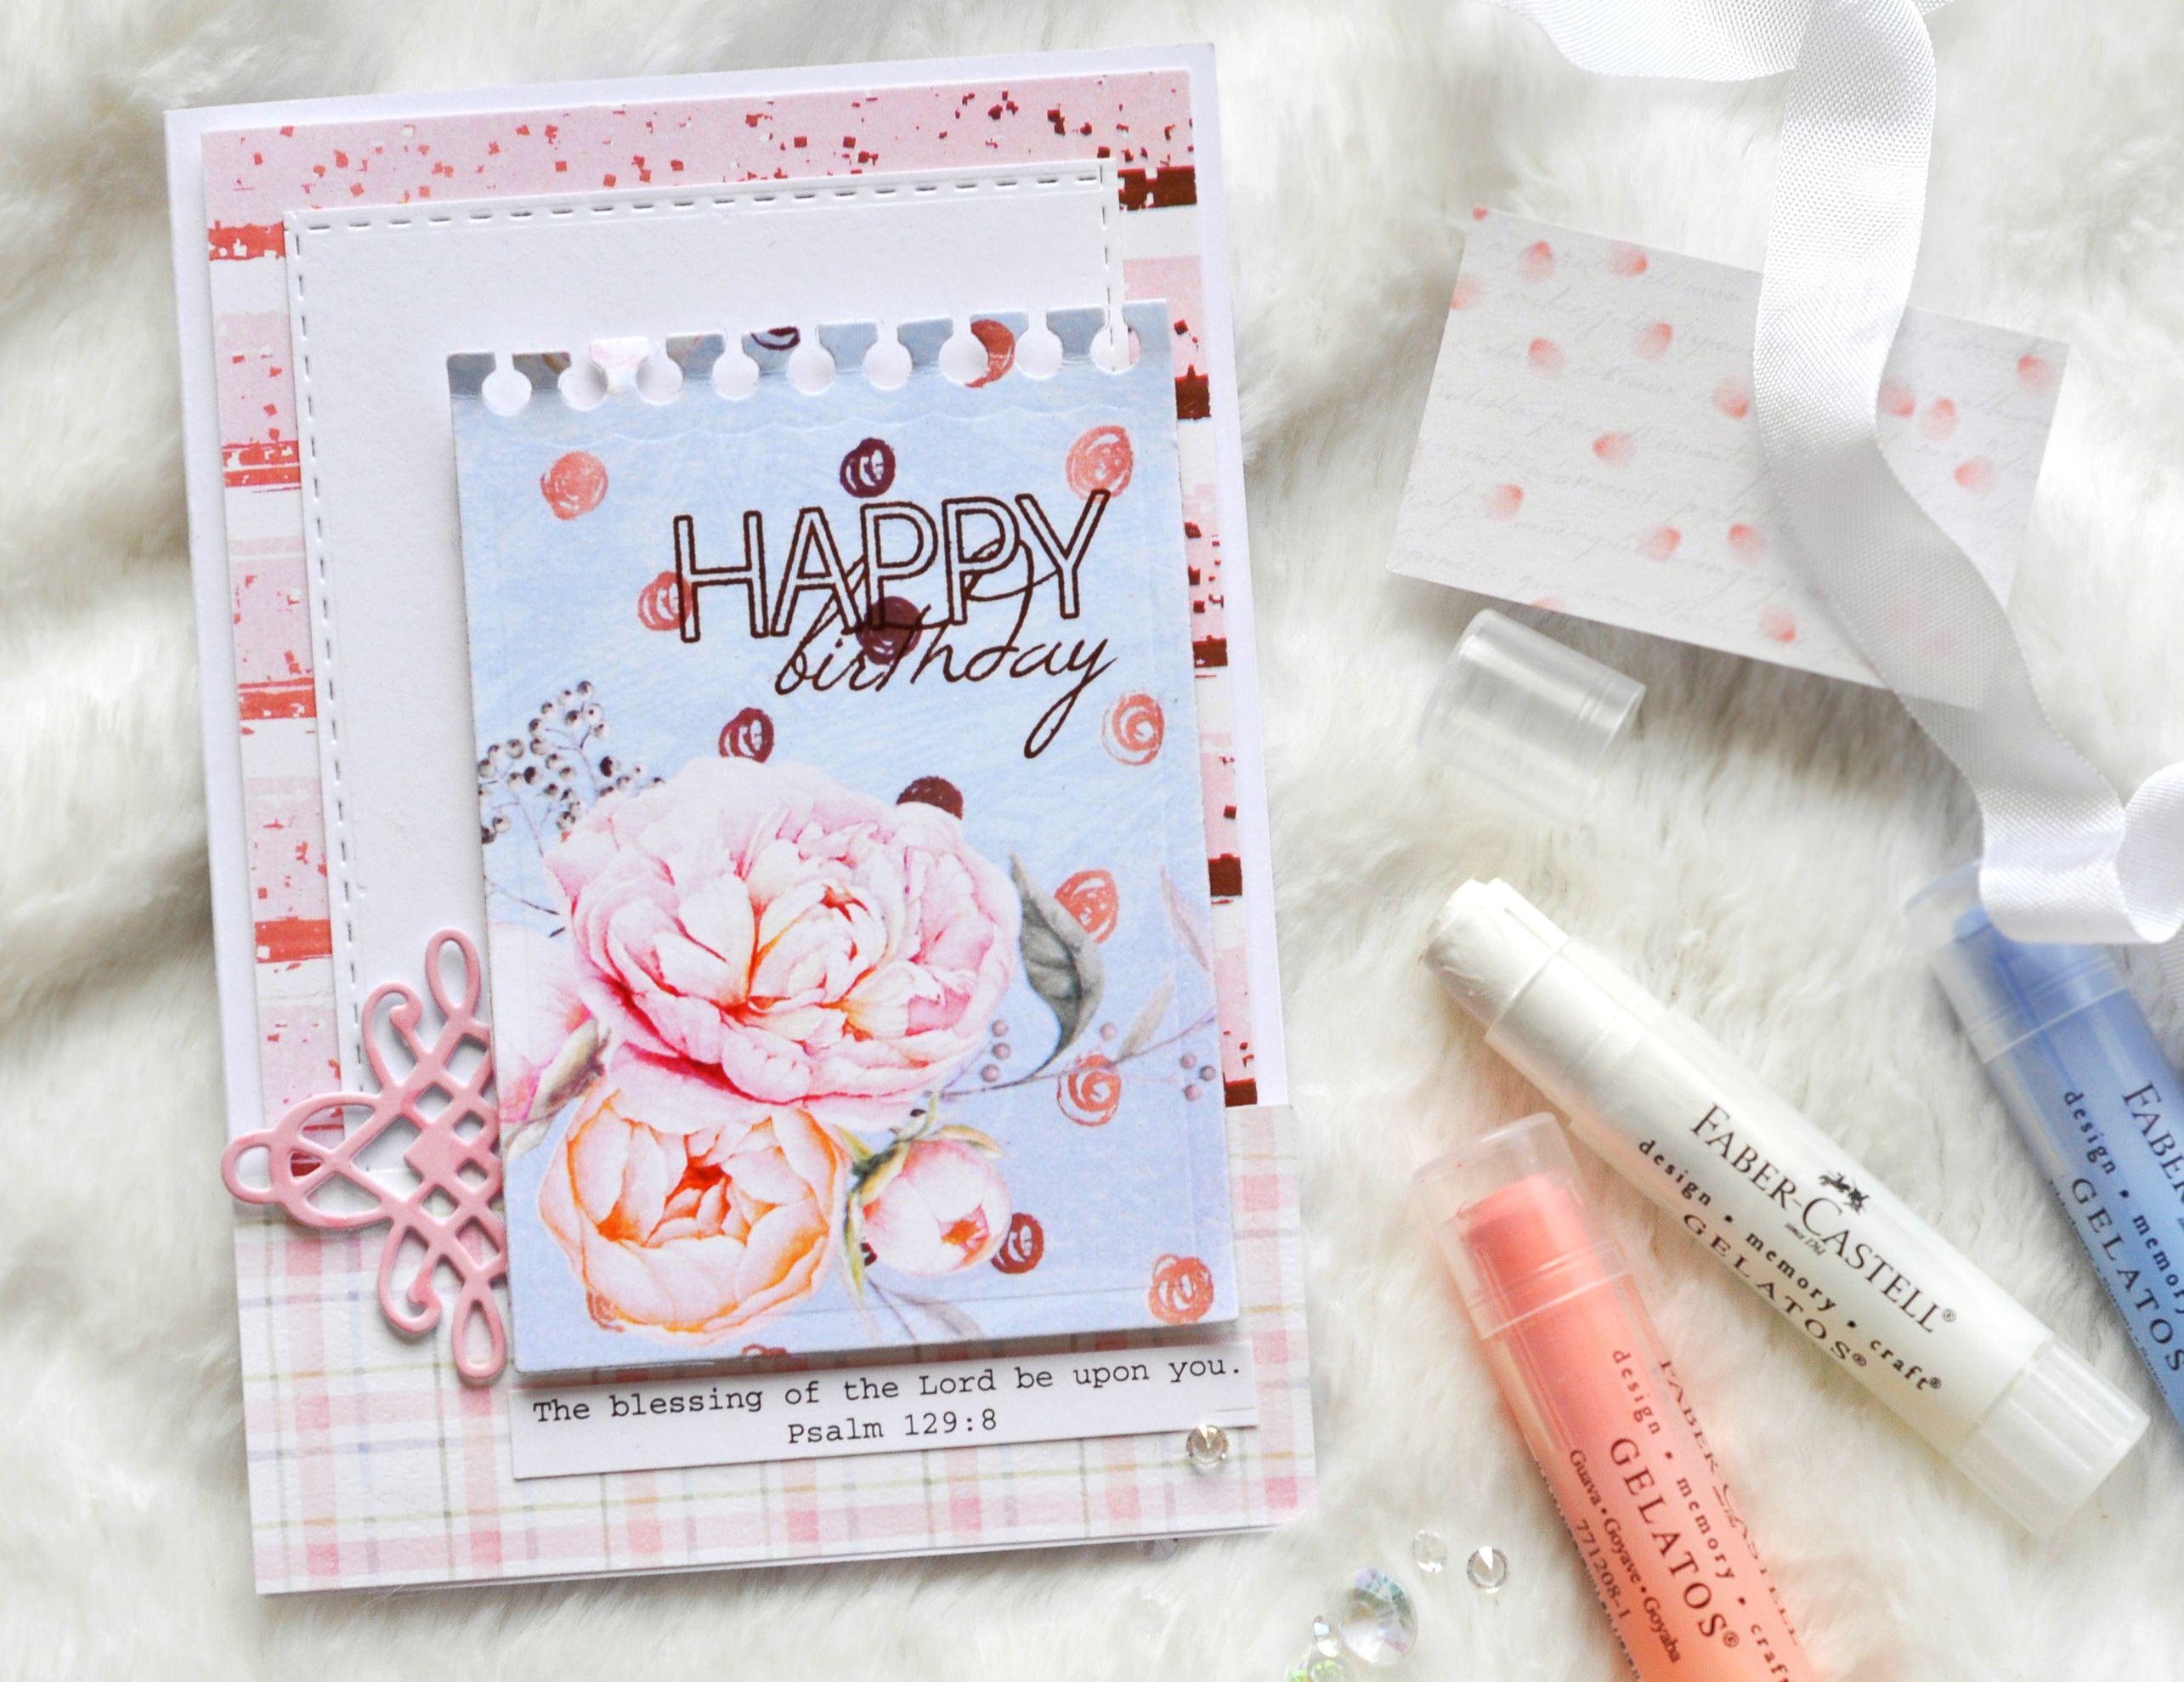 Happy Birthday Christian Bible Verse Handmade Card By Pink Lion